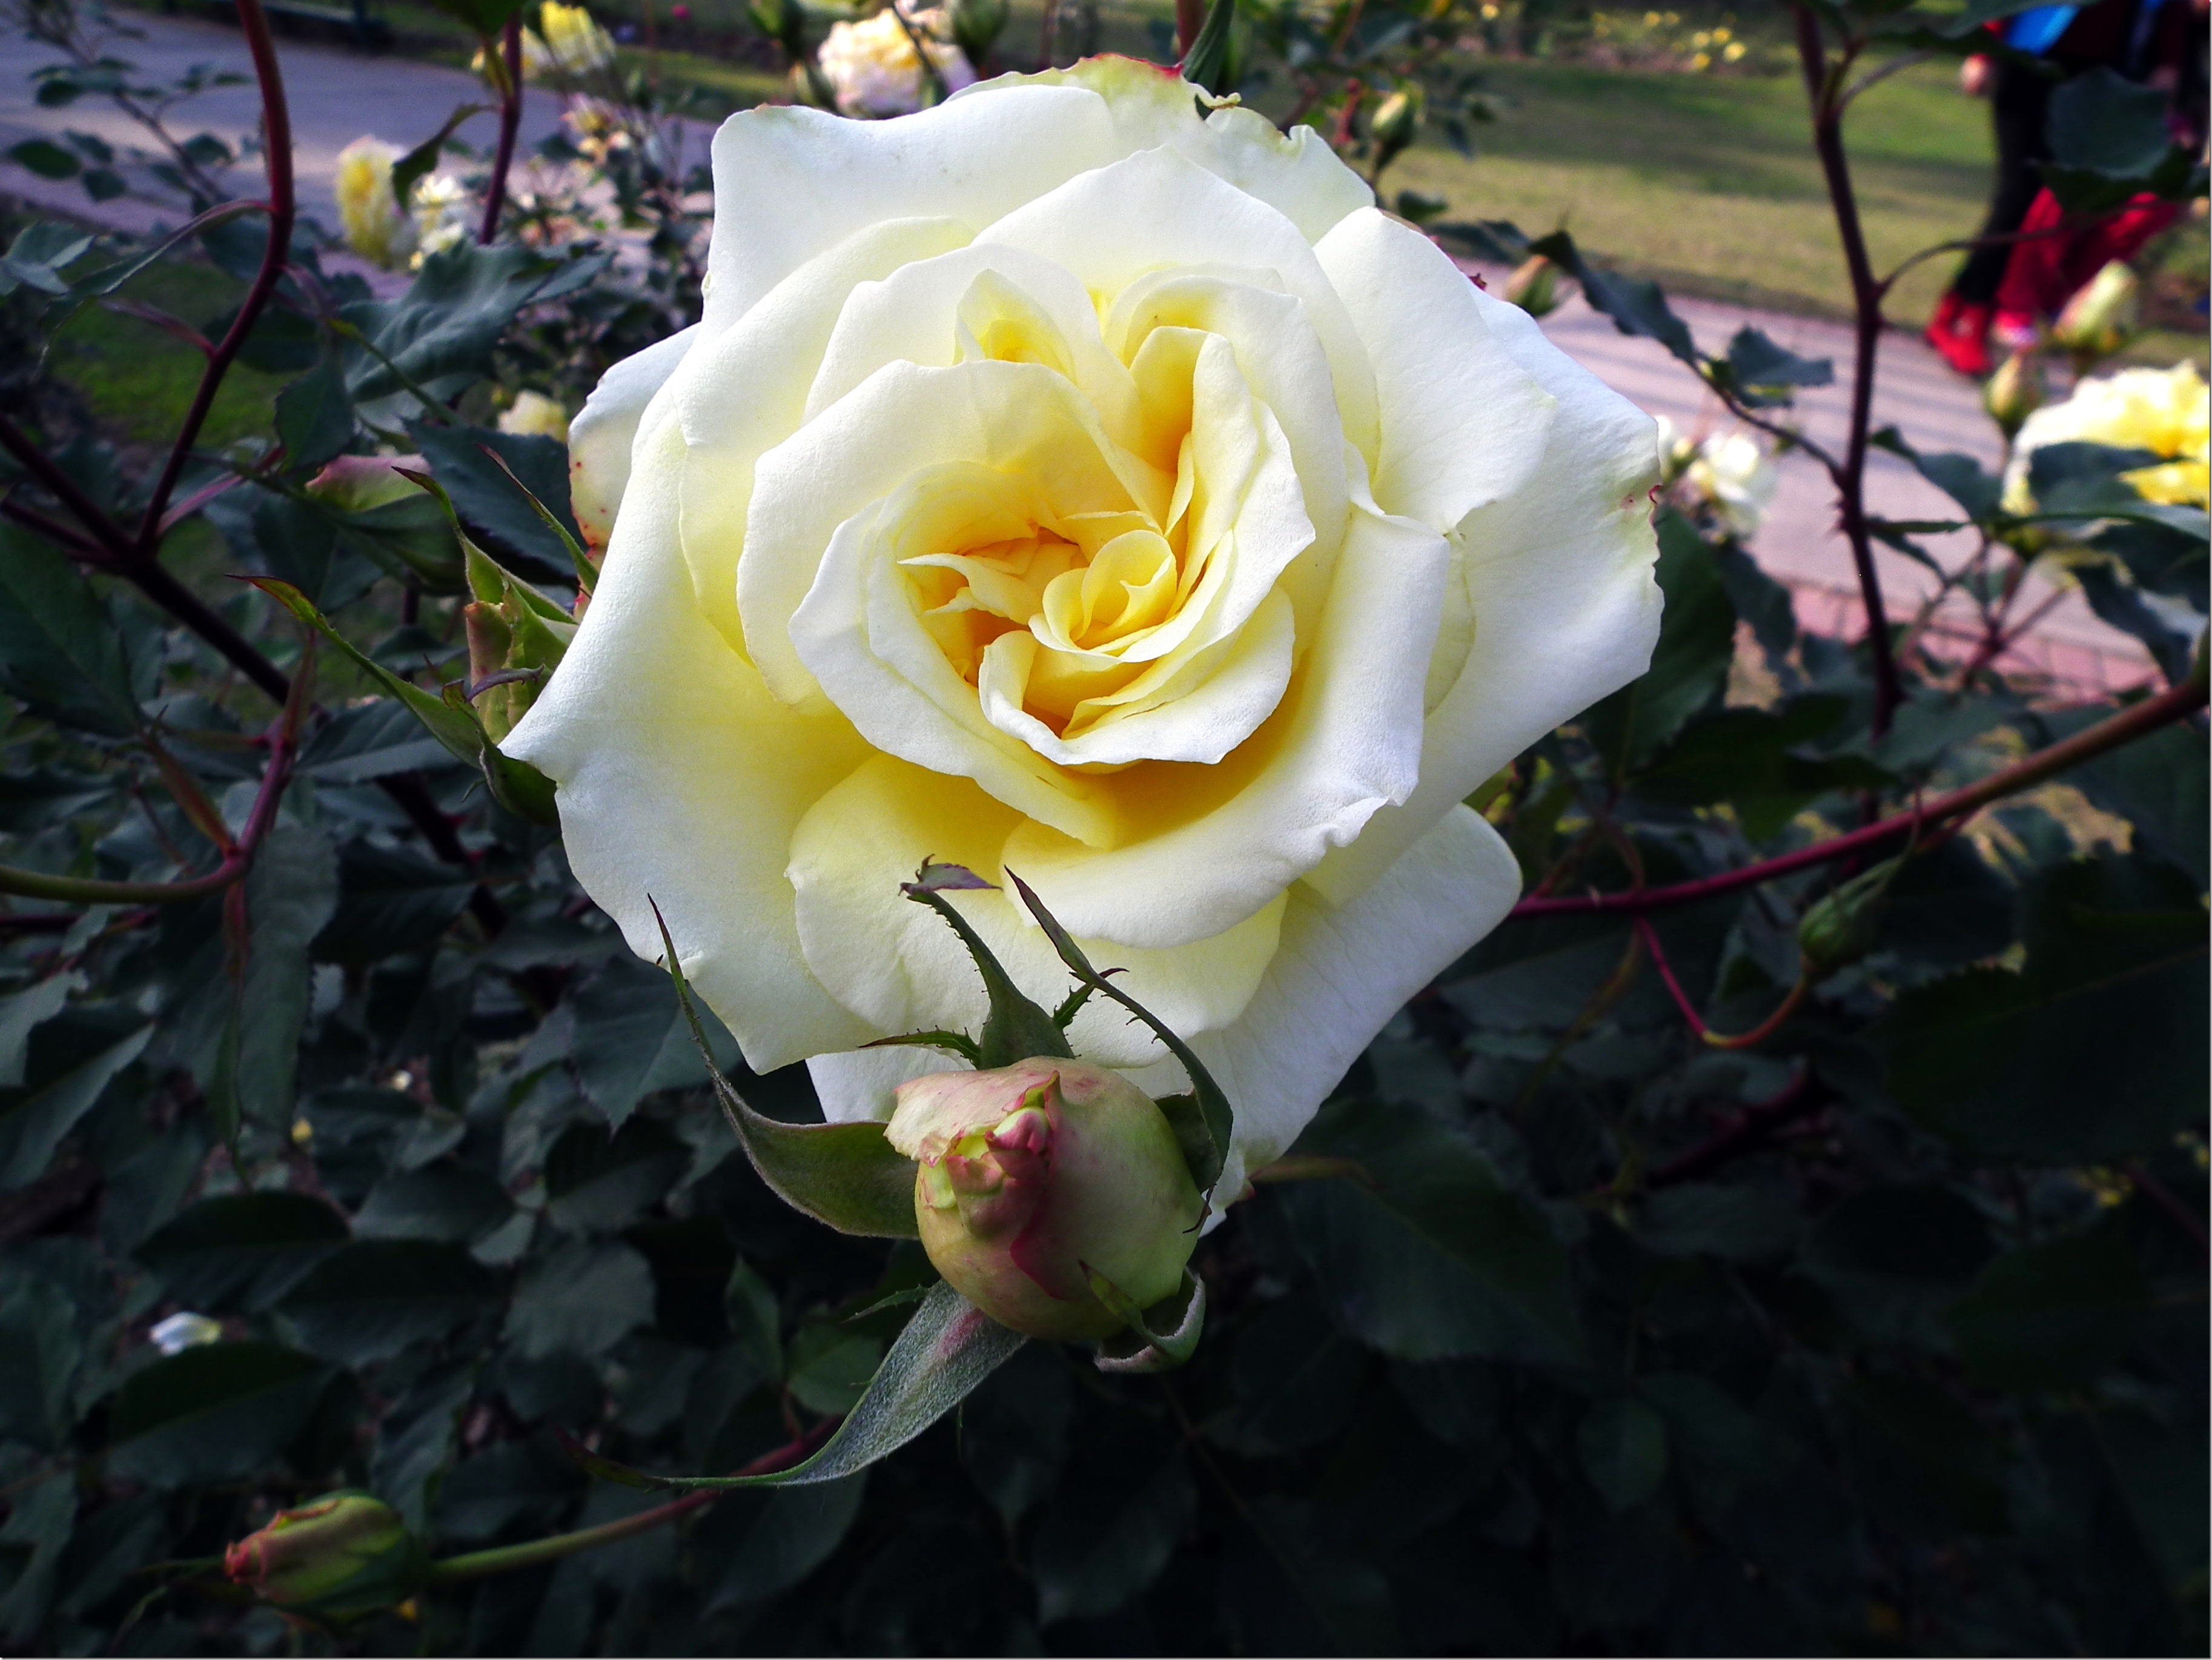 Yellow White Rose Flower with bud